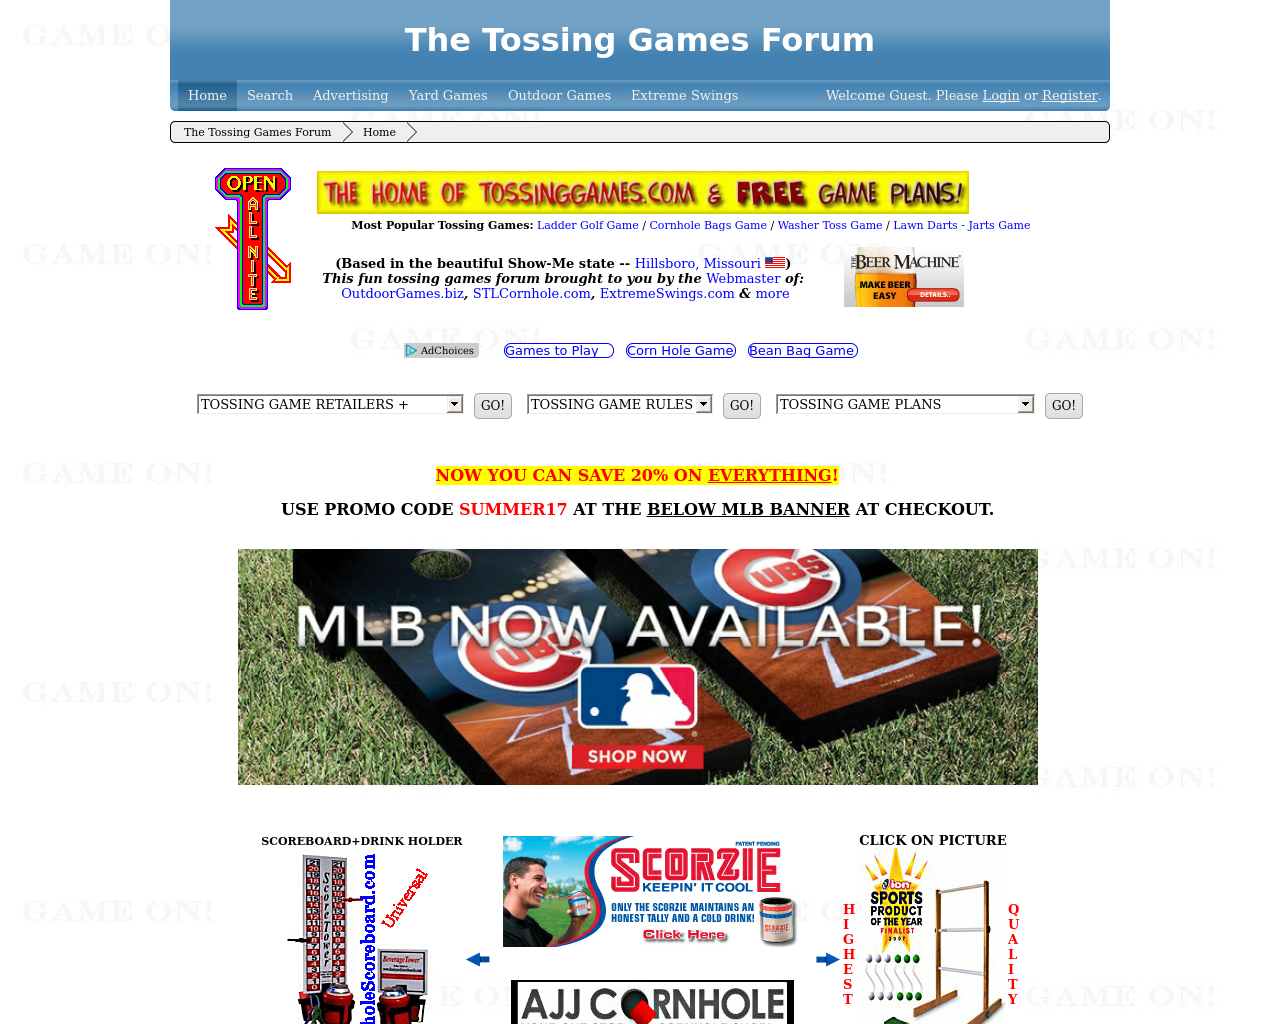 The-Tossing-Games-Forum-Advertising-Reviews-Pricing